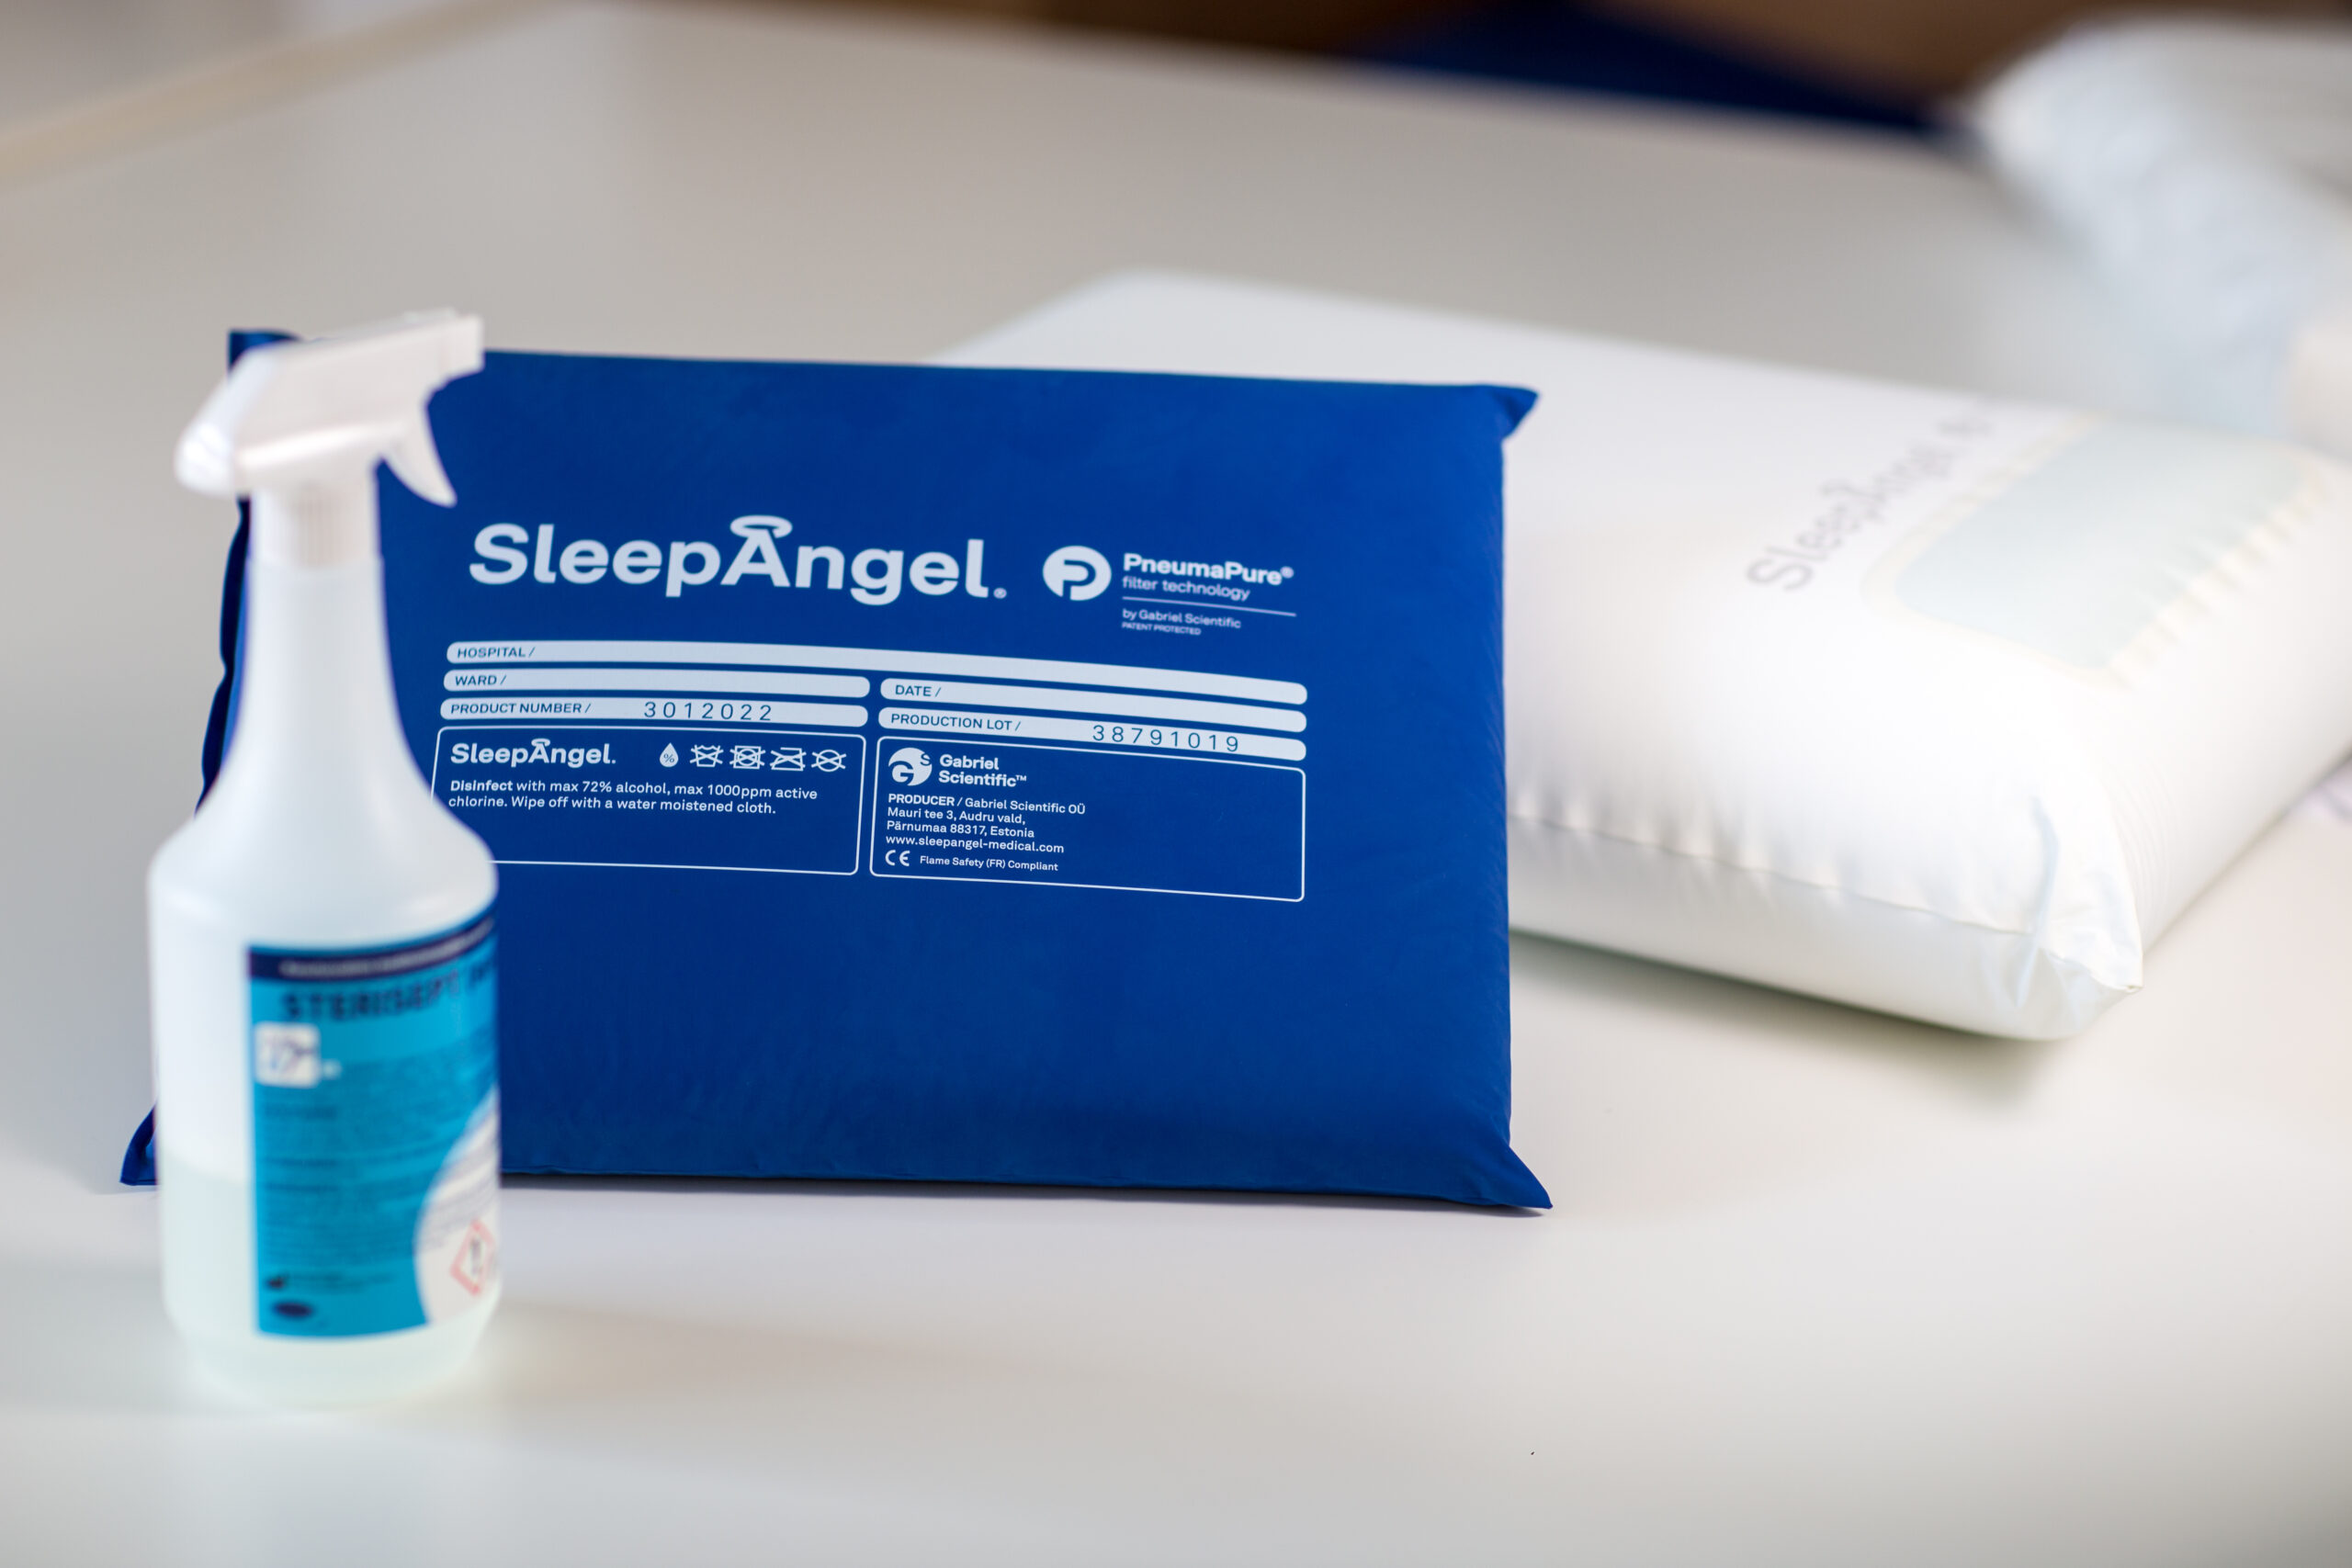 SleepAngel bedding products are available in Medical White and Royal Blue. Product can be cleaned by disinfecting